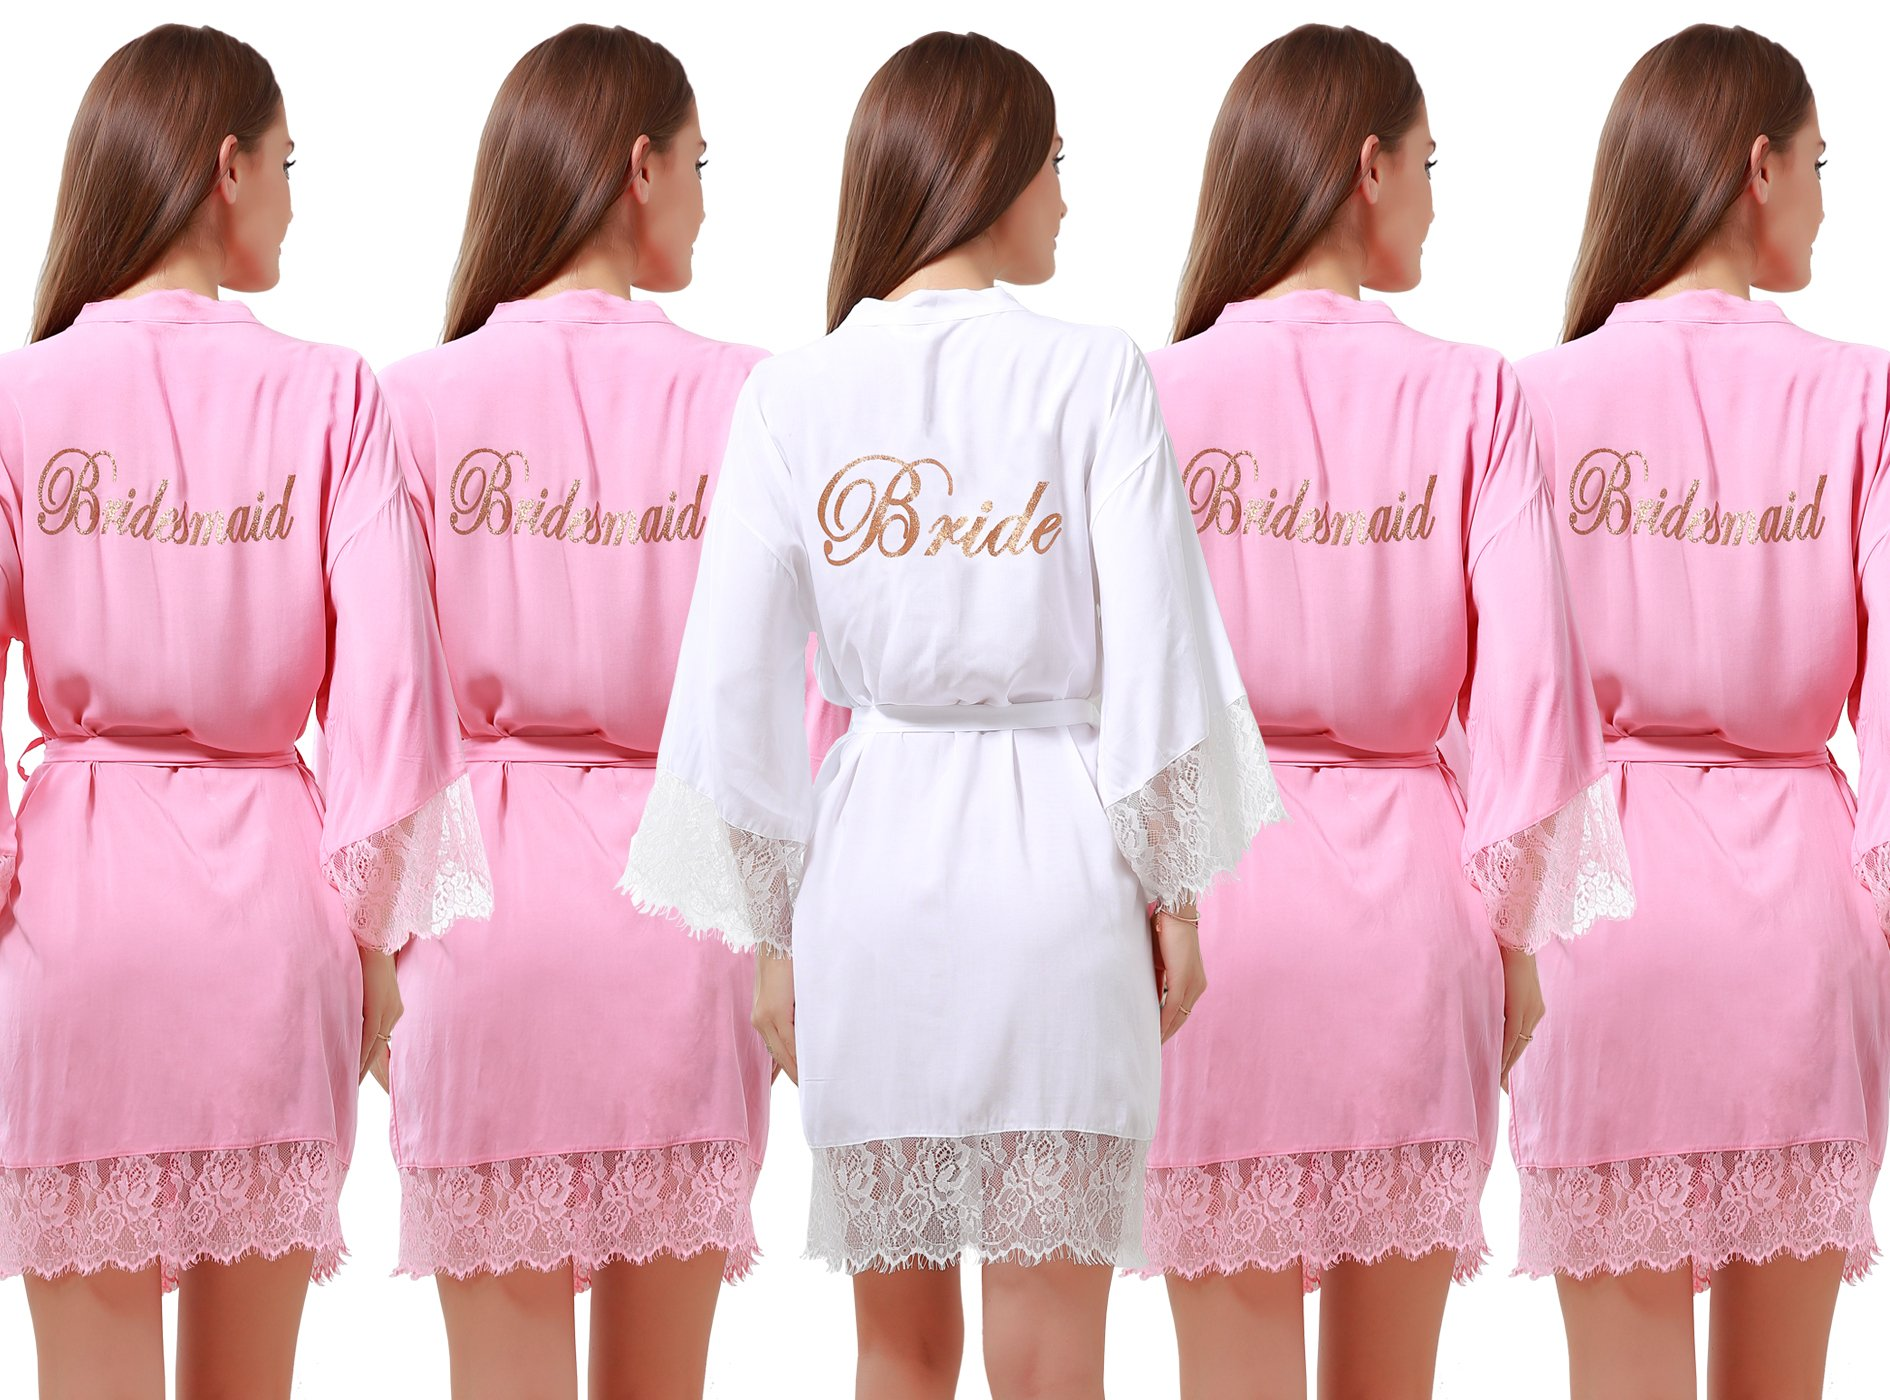 Set of 5 Women's Cotton Kimono Robes Wedding Party Gifts for bride and Bridesmaid with Lace Trim